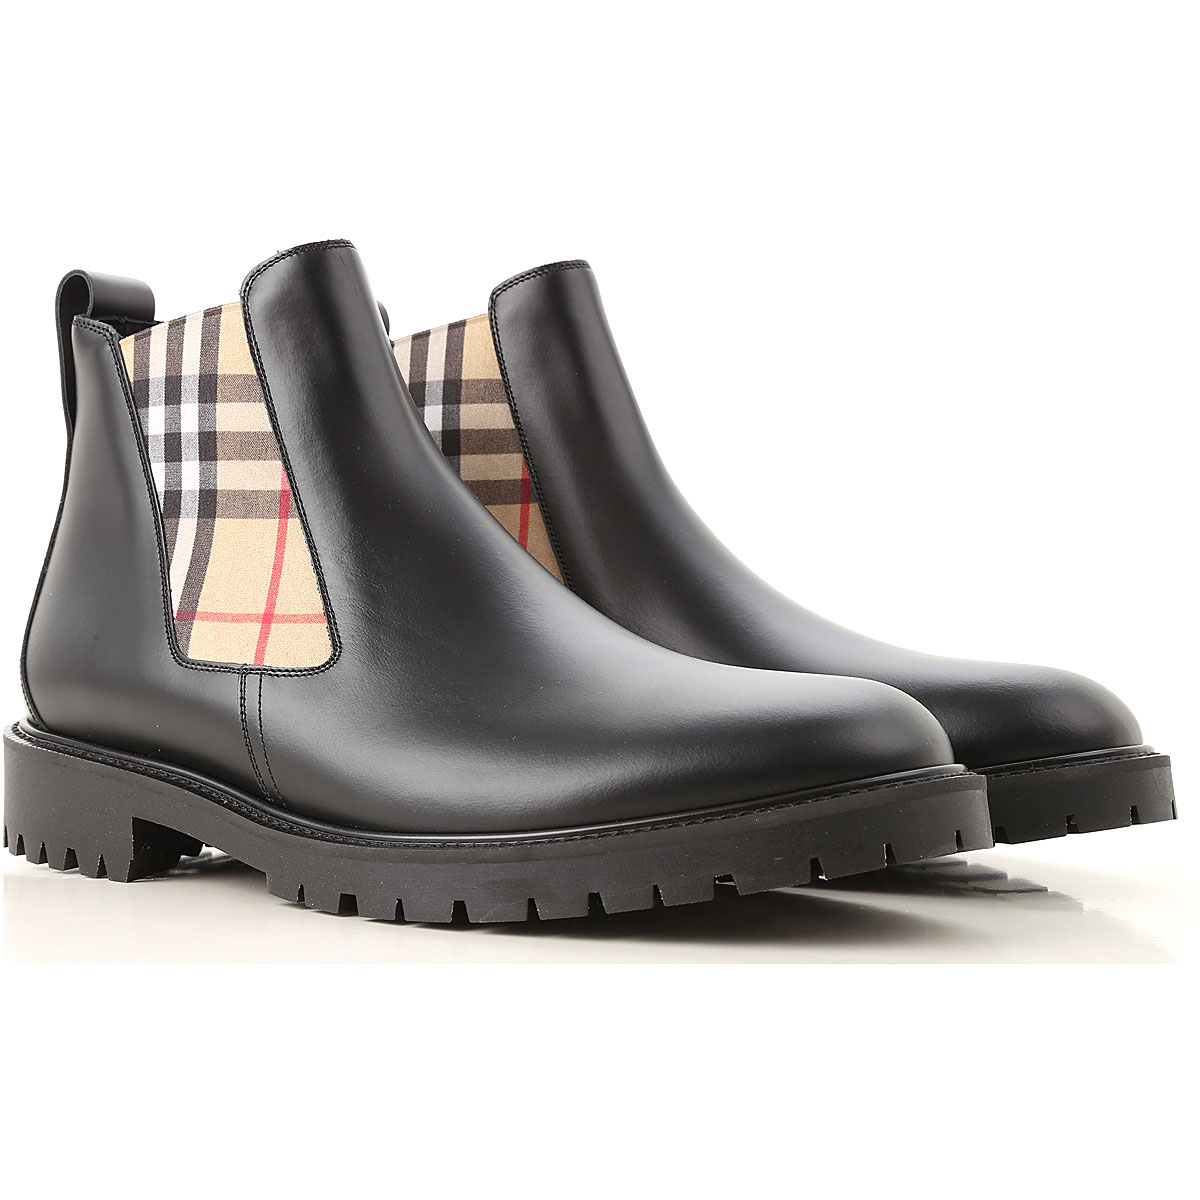 Image of Burberry Chelsea Boots for Men, Black, Leather, 2017, 12 8